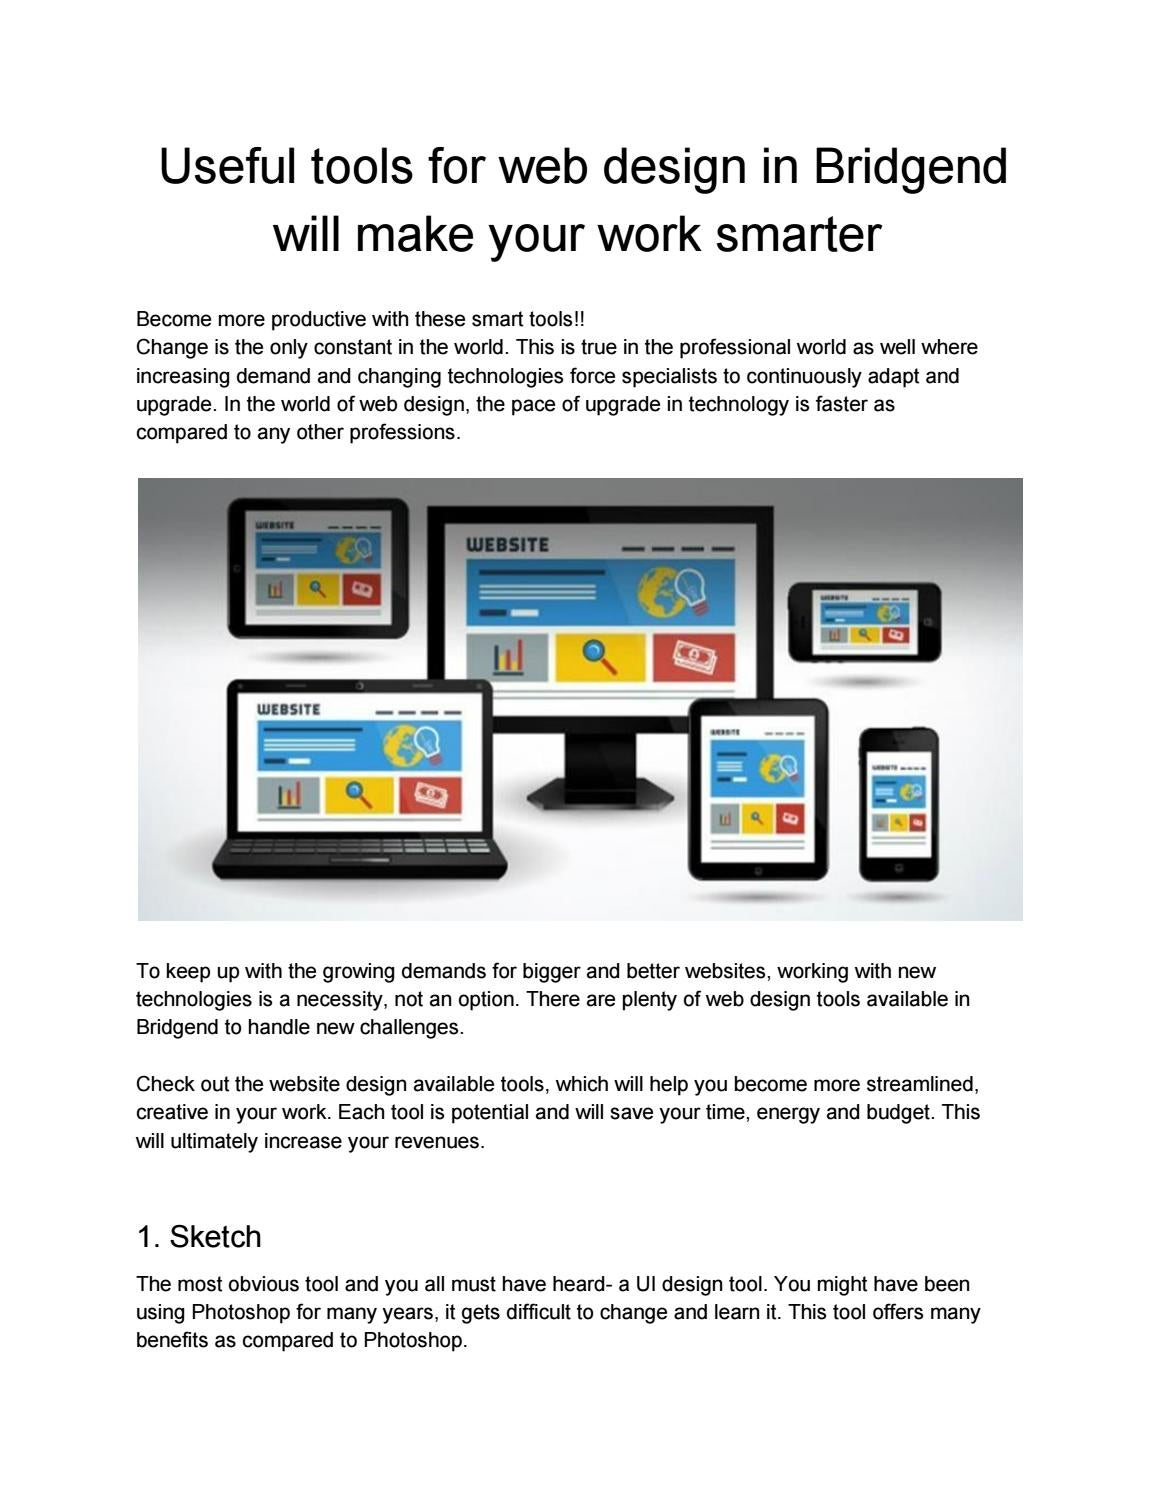 Useful Tools For Web Design In Bridgend Will Make Your Work Smarter By Stablesamy26 Issuu